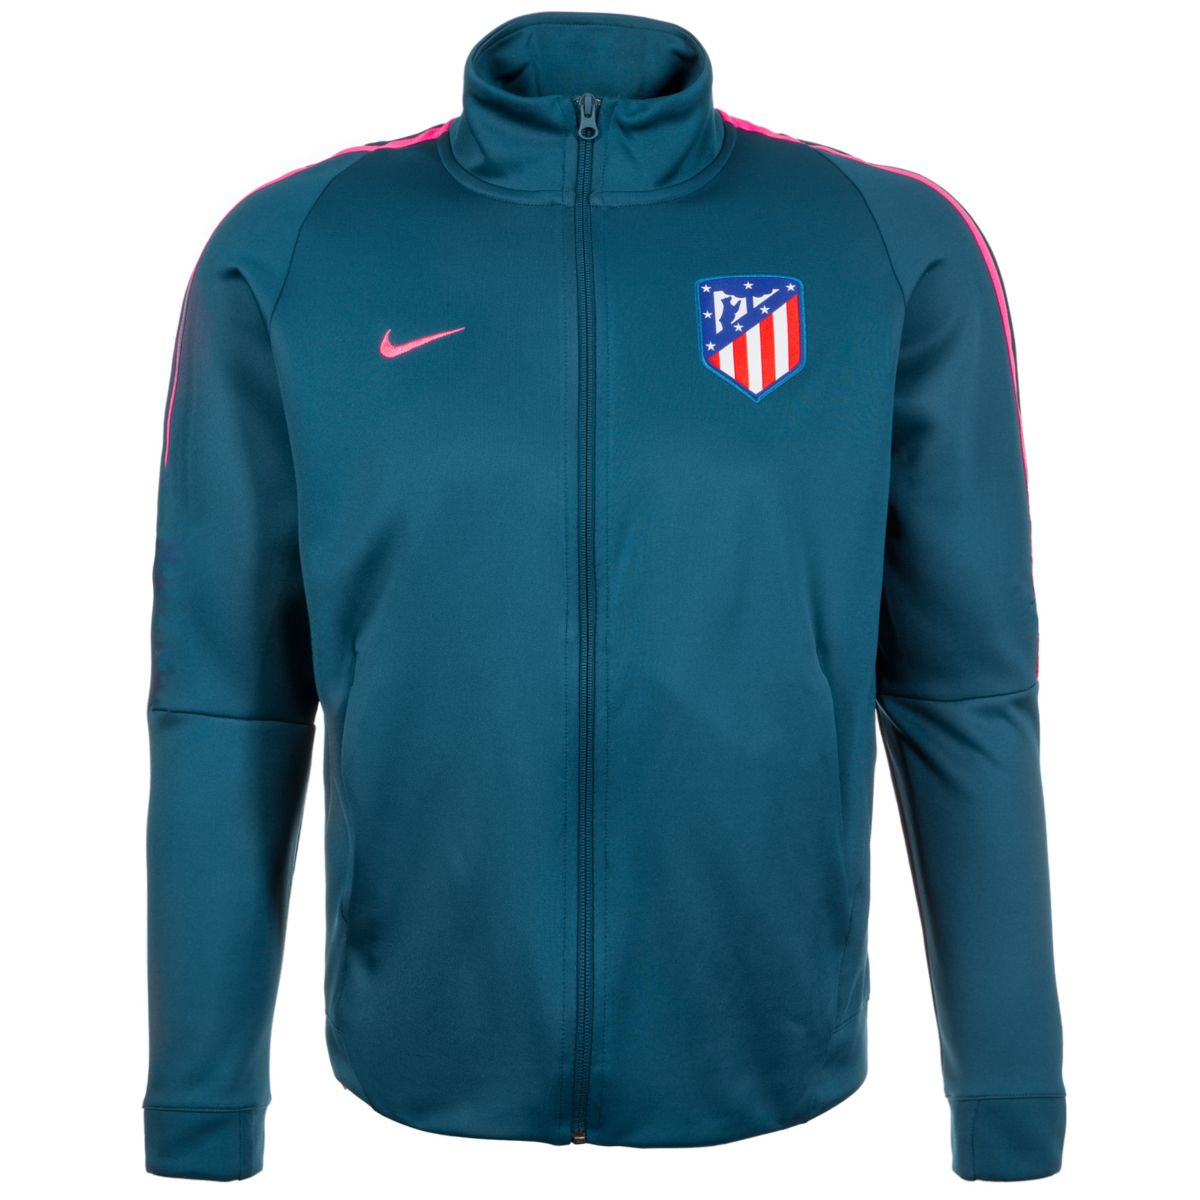 Nike Trainingsjacke »Atletico Madrid Franchise«